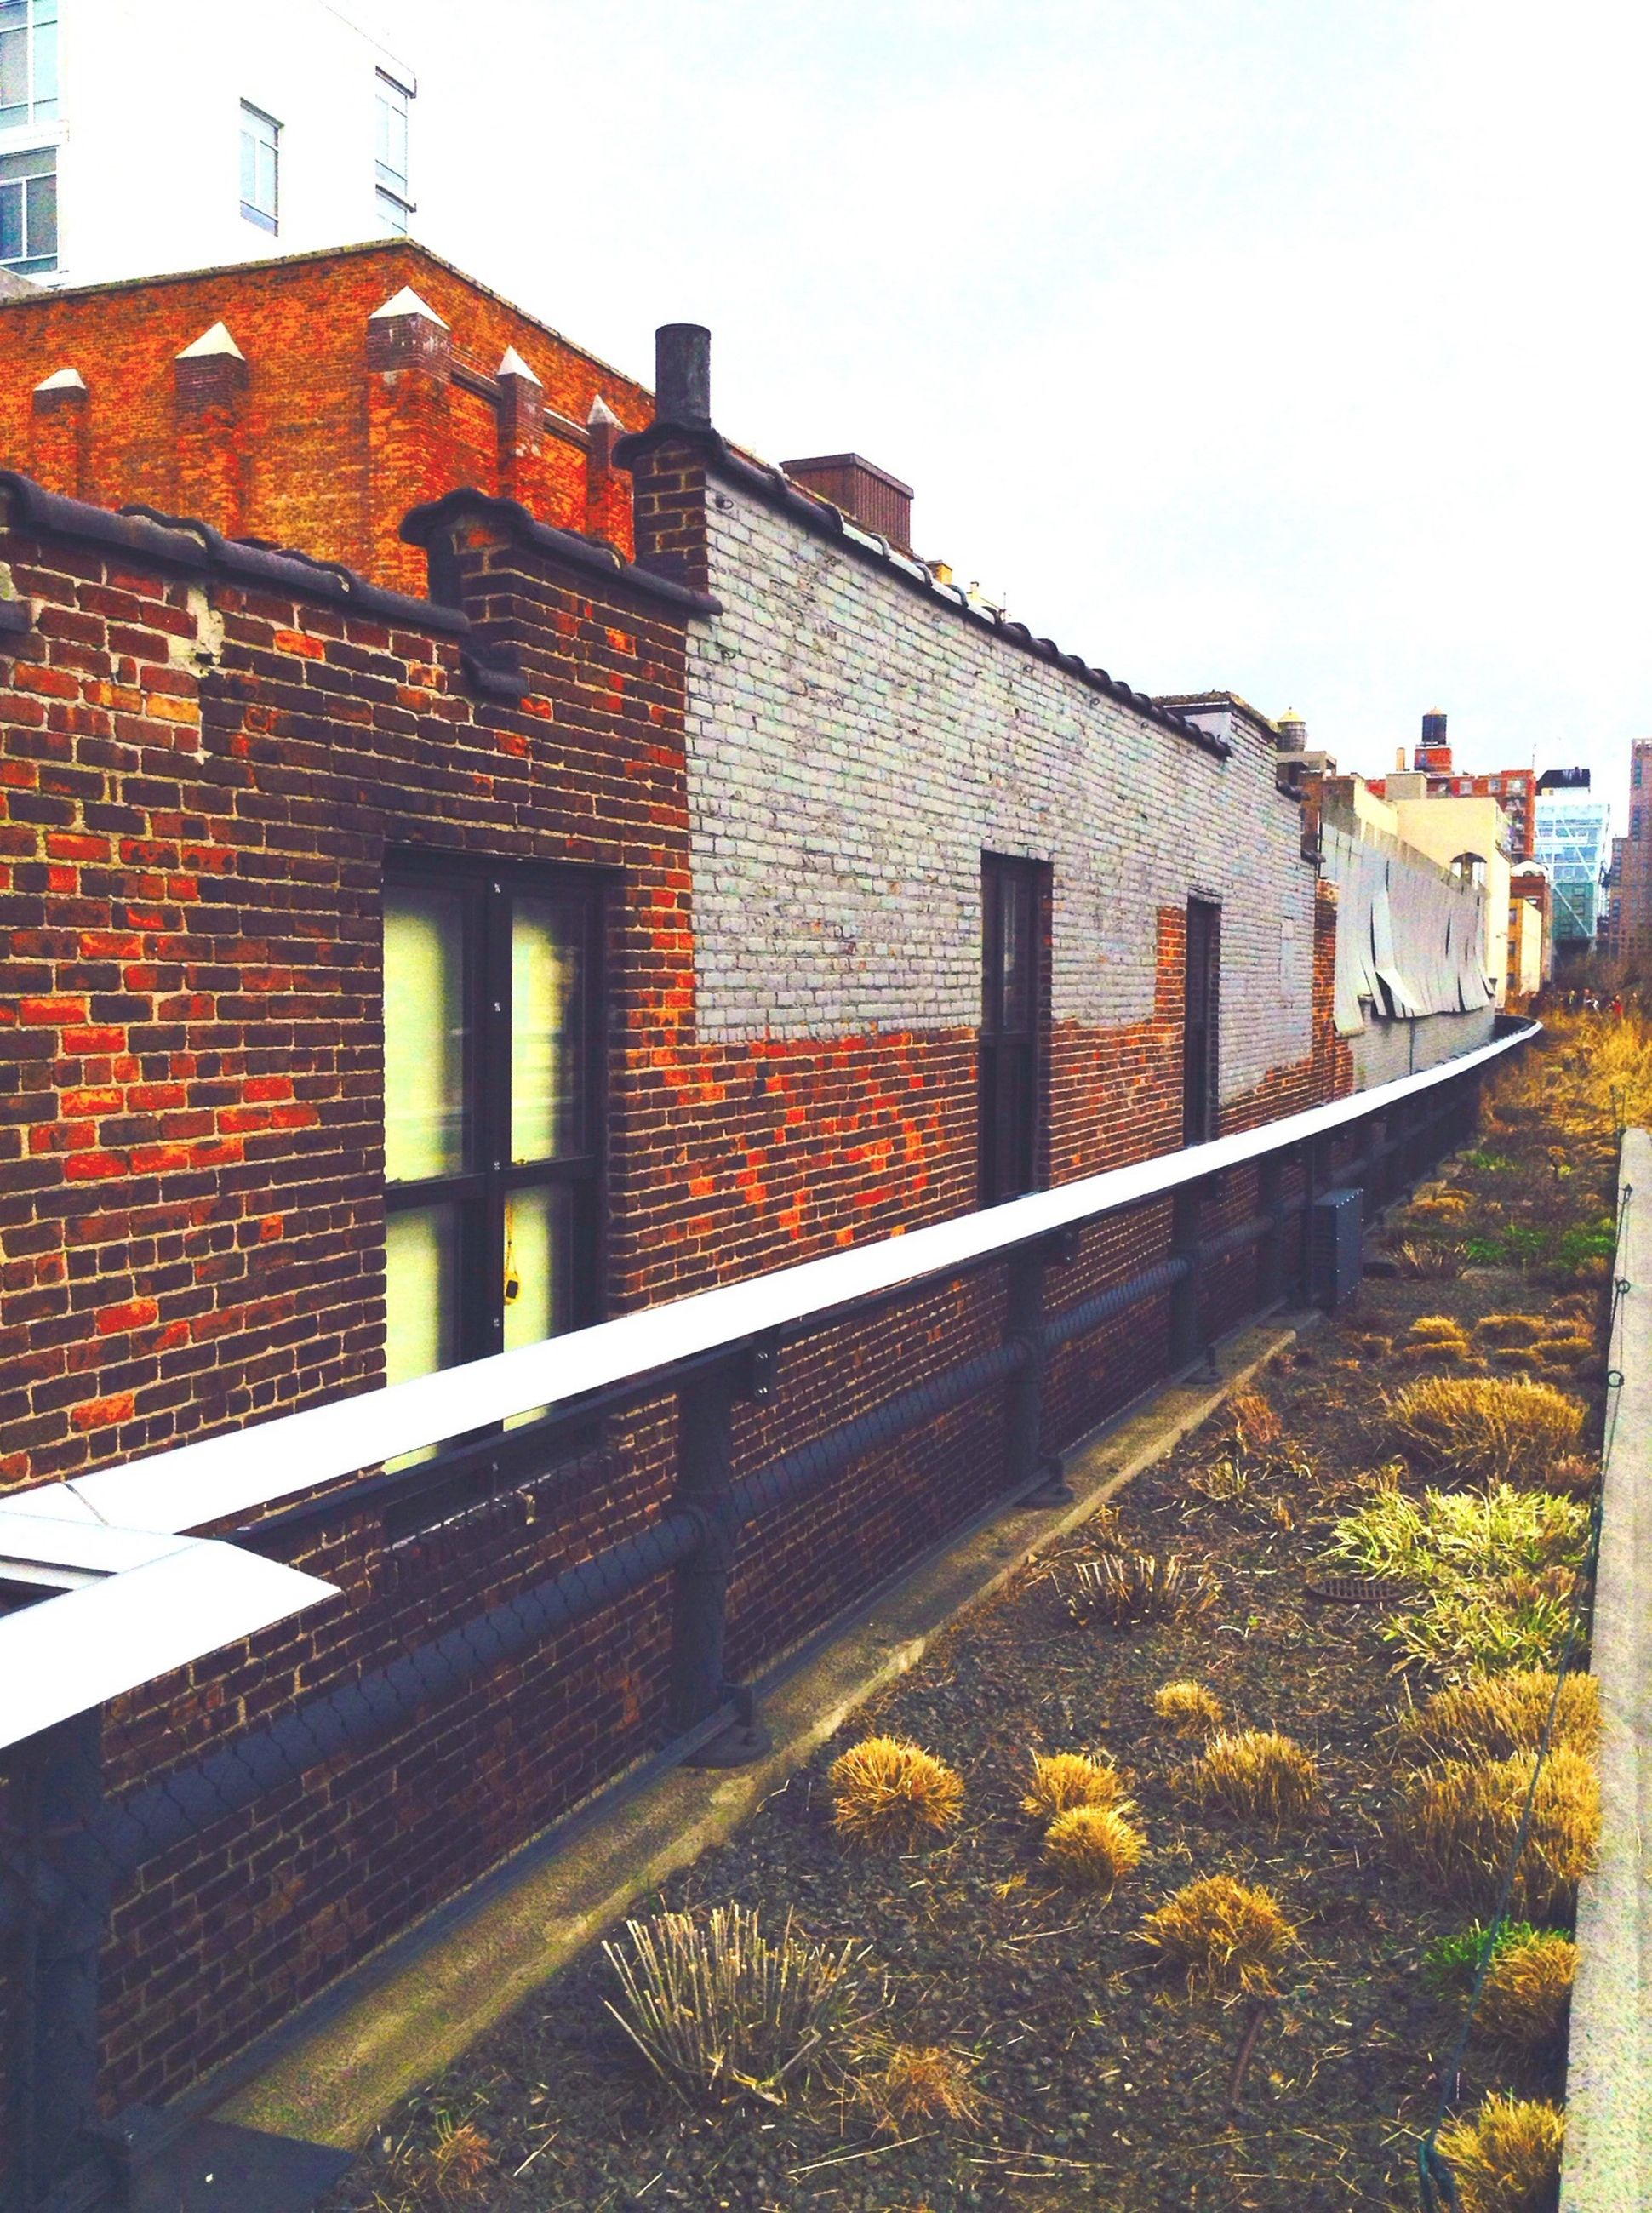 architecture, built structure, building exterior, house, the way forward, clear sky, residential structure, brick wall, wall - building feature, outdoors, day, building, no people, sky, residential building, railing, low angle view, diminishing perspective, exterior, old